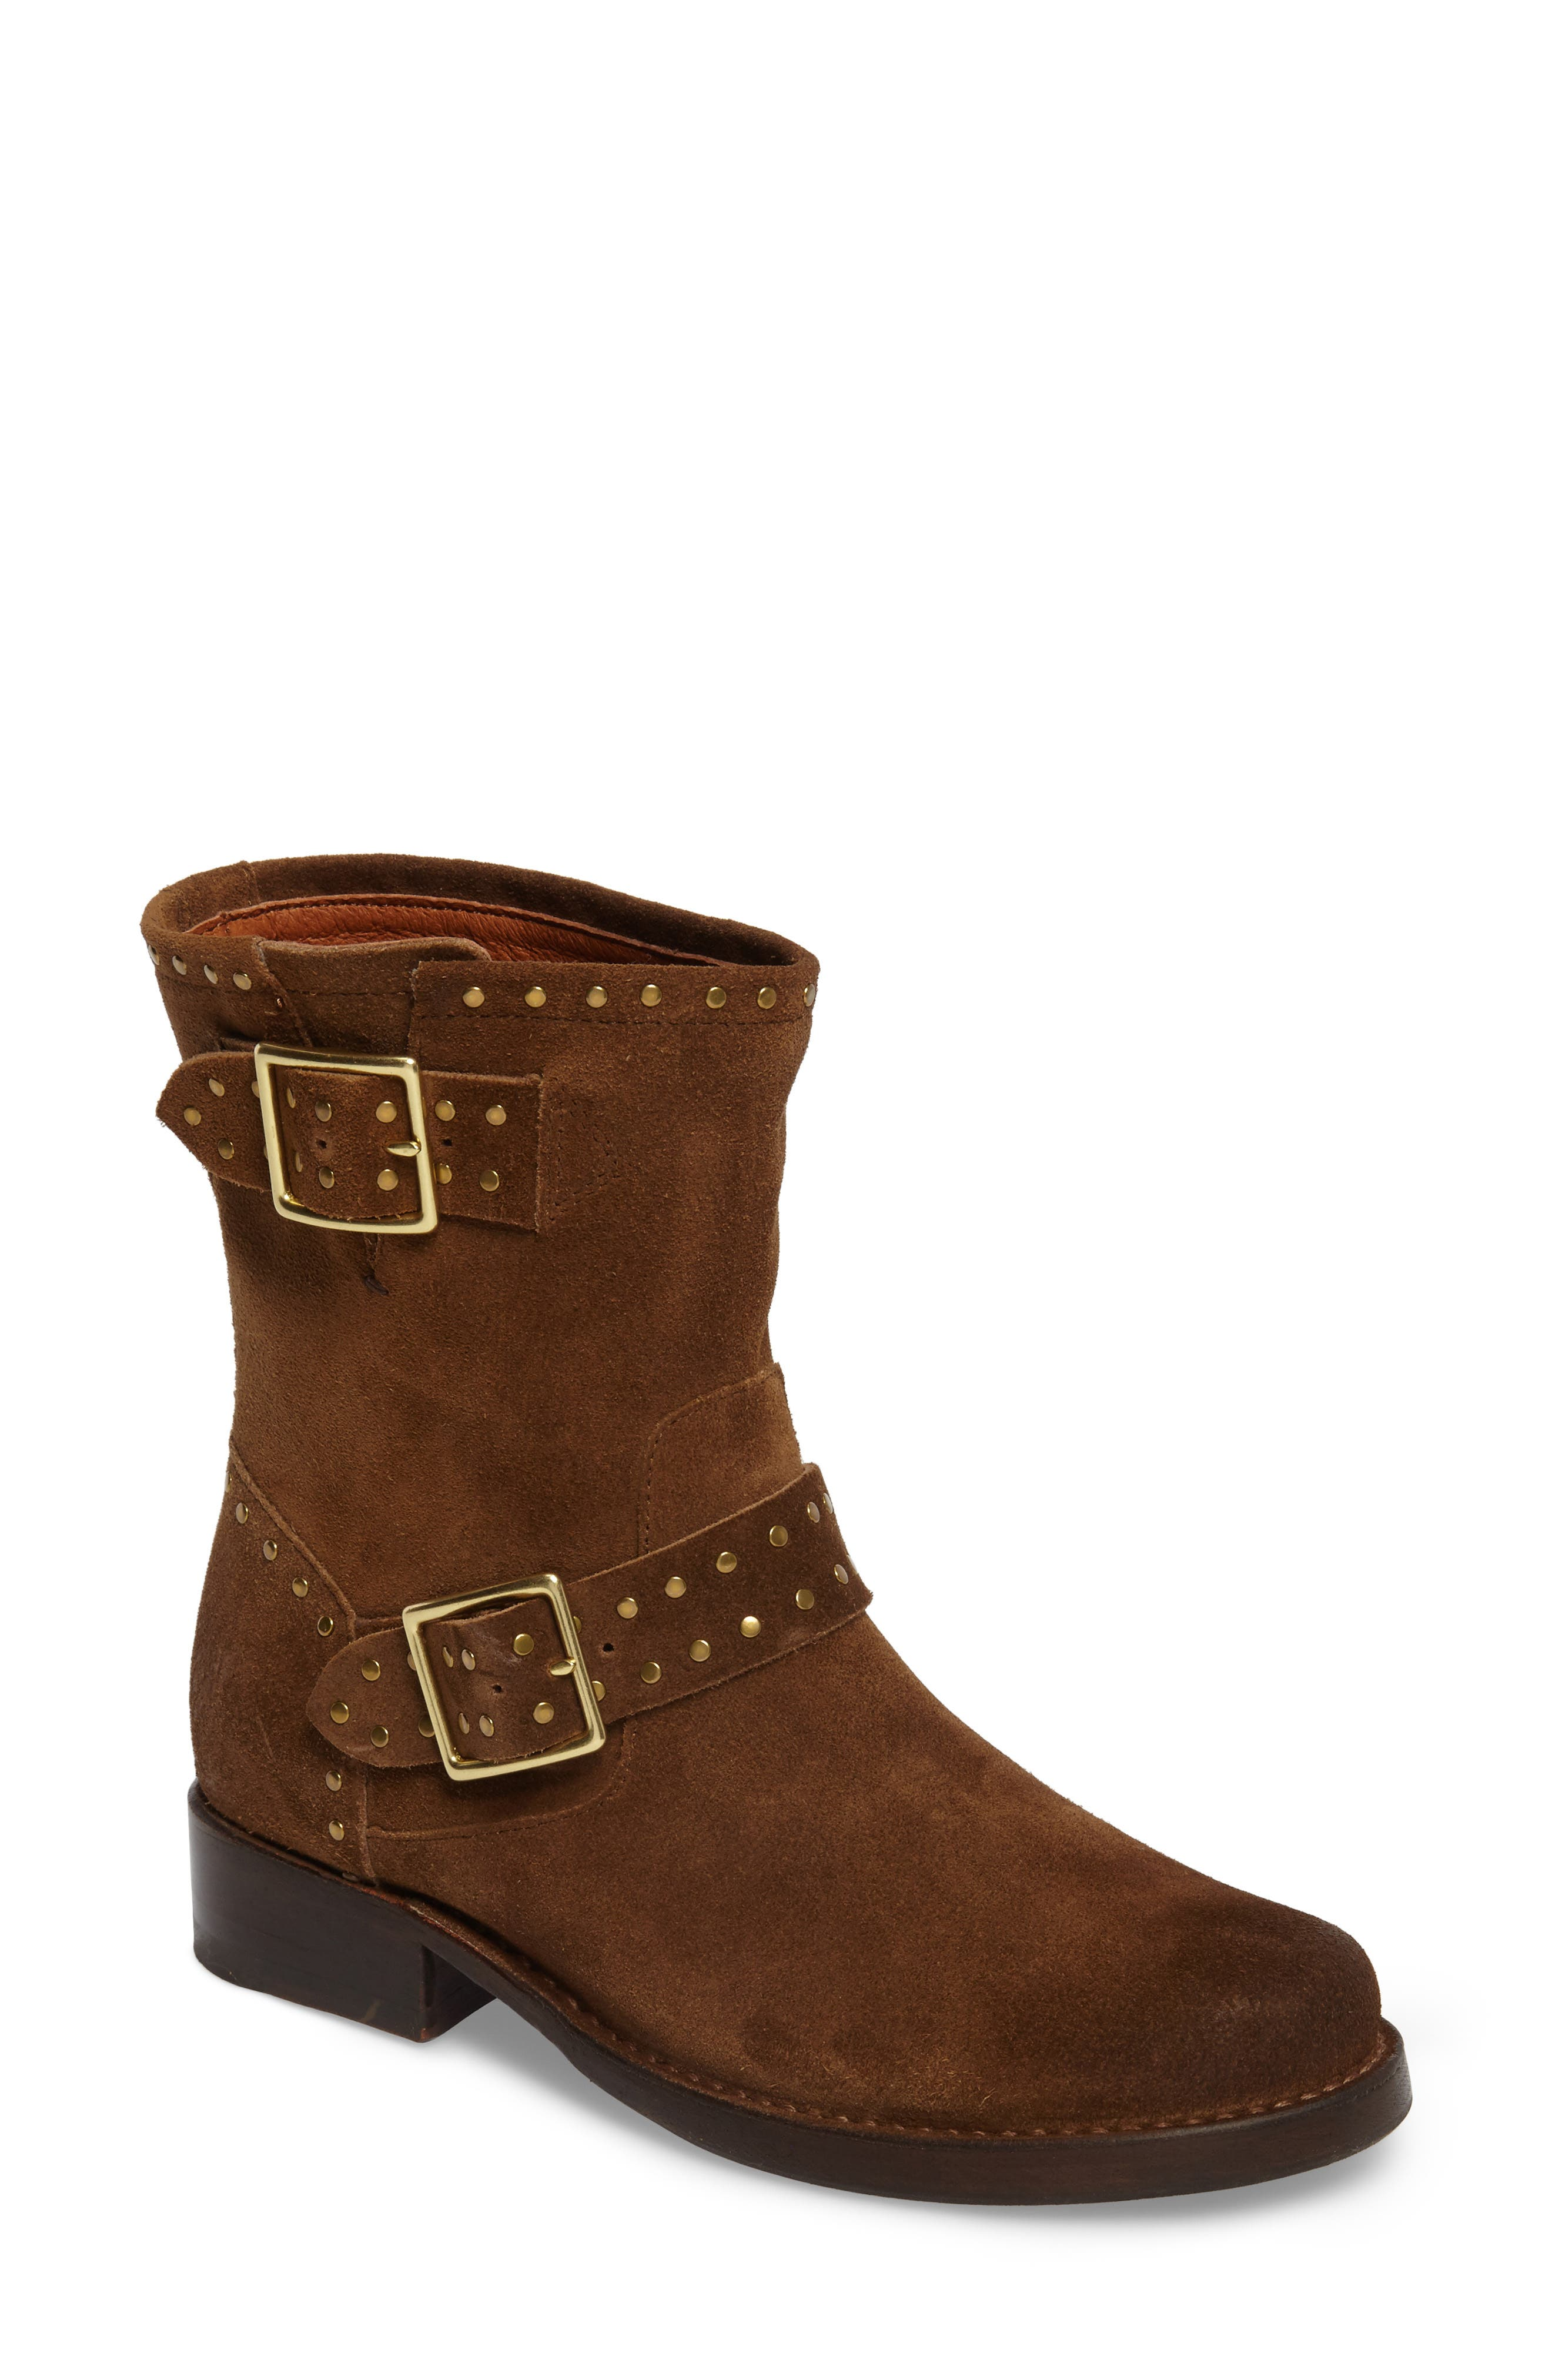 Vicky Stud Engineer Boot,                             Main thumbnail 1, color,                             Chestnut Suede